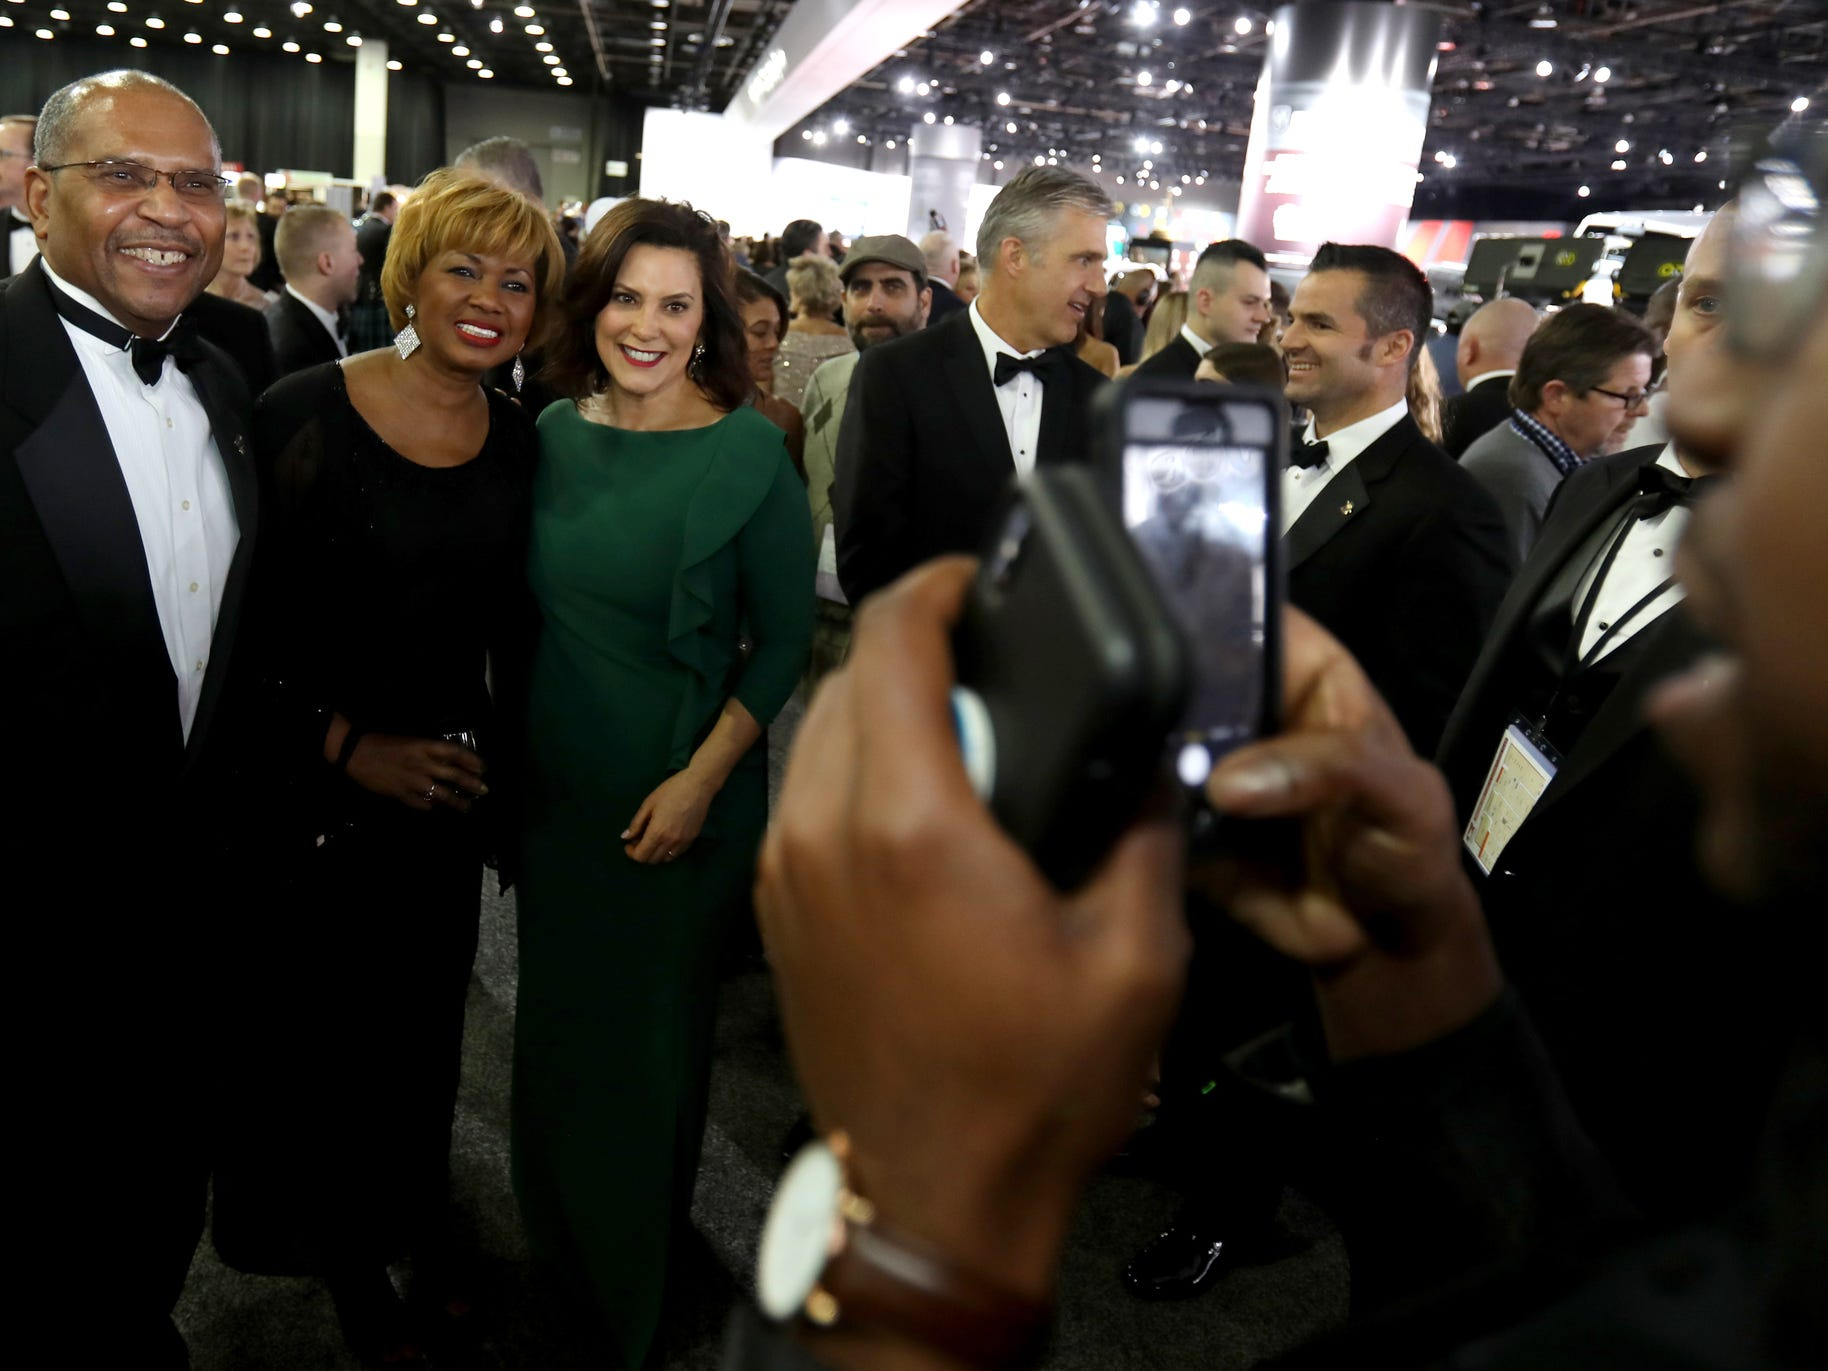 (L to R) Mark and Rosa Adams found Governor Gretchen Whitmer and wanted their picture taken with her as they walked around the 2019 North American International Auto Show Charity Preview at Cobo Center in Detroit on Friday, January 18, 2019.